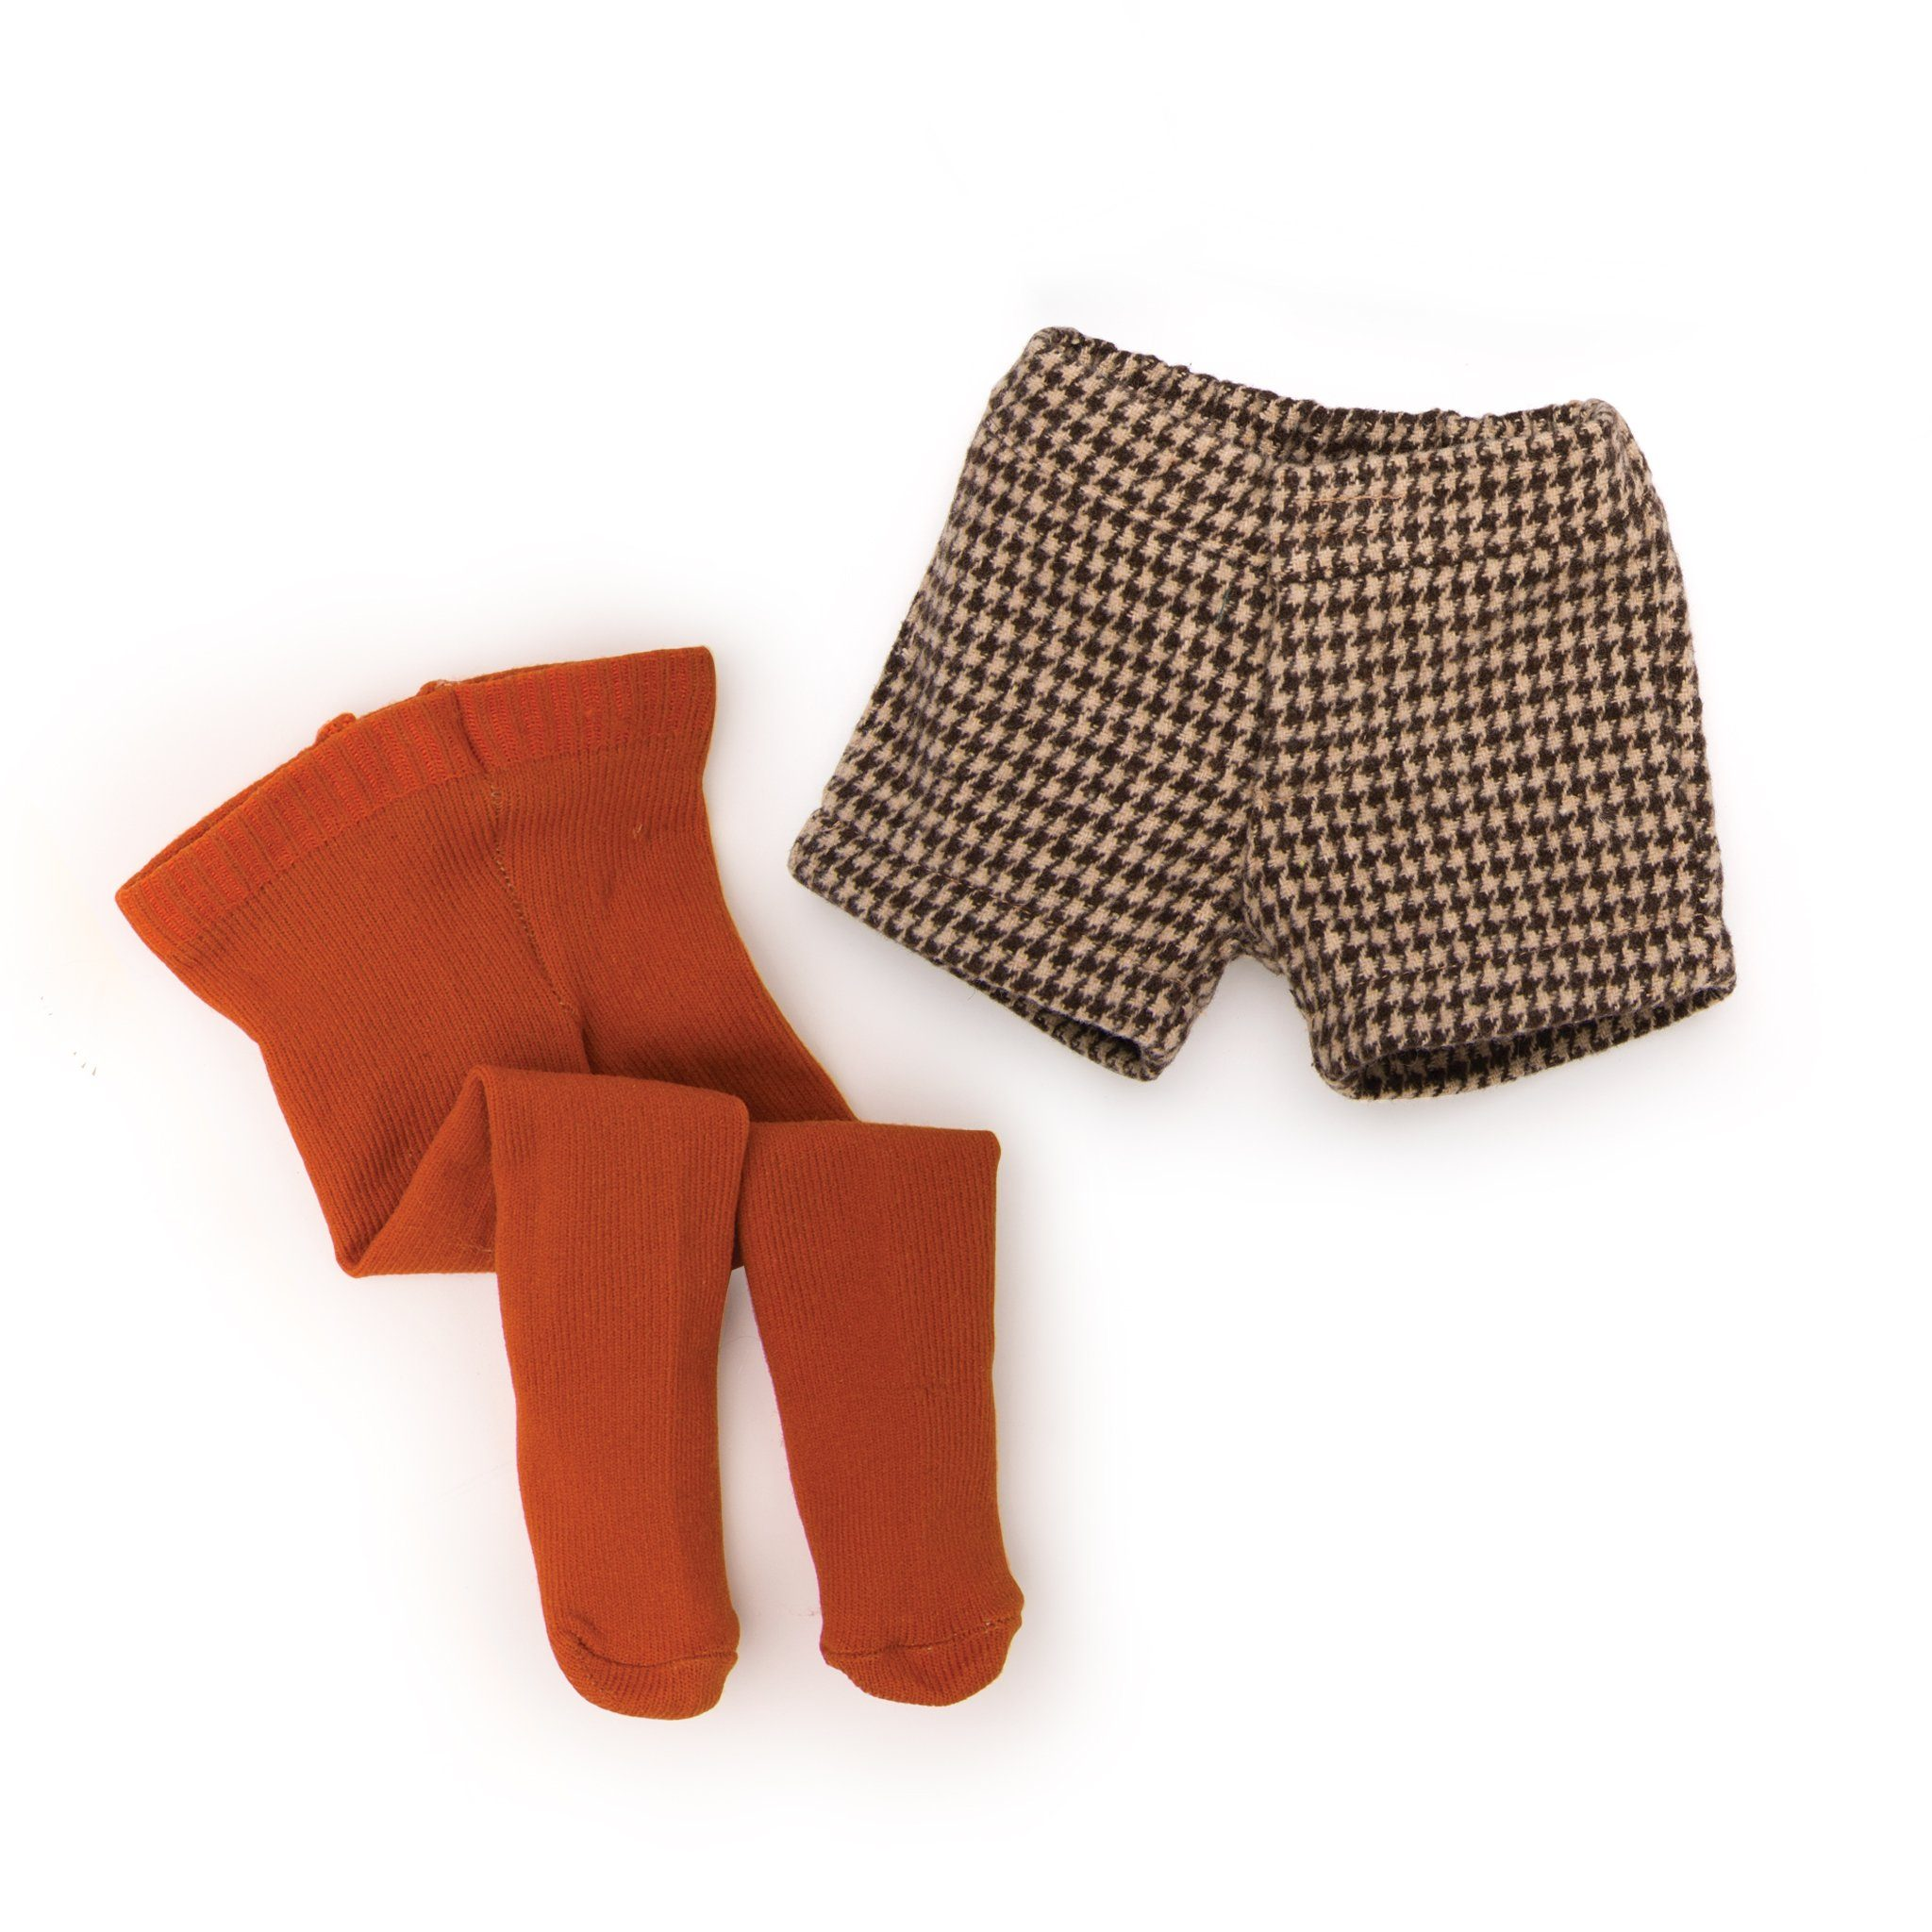 Urban Jungle orange tights, brown houndstooth shorts fit all 18 inch dolls.